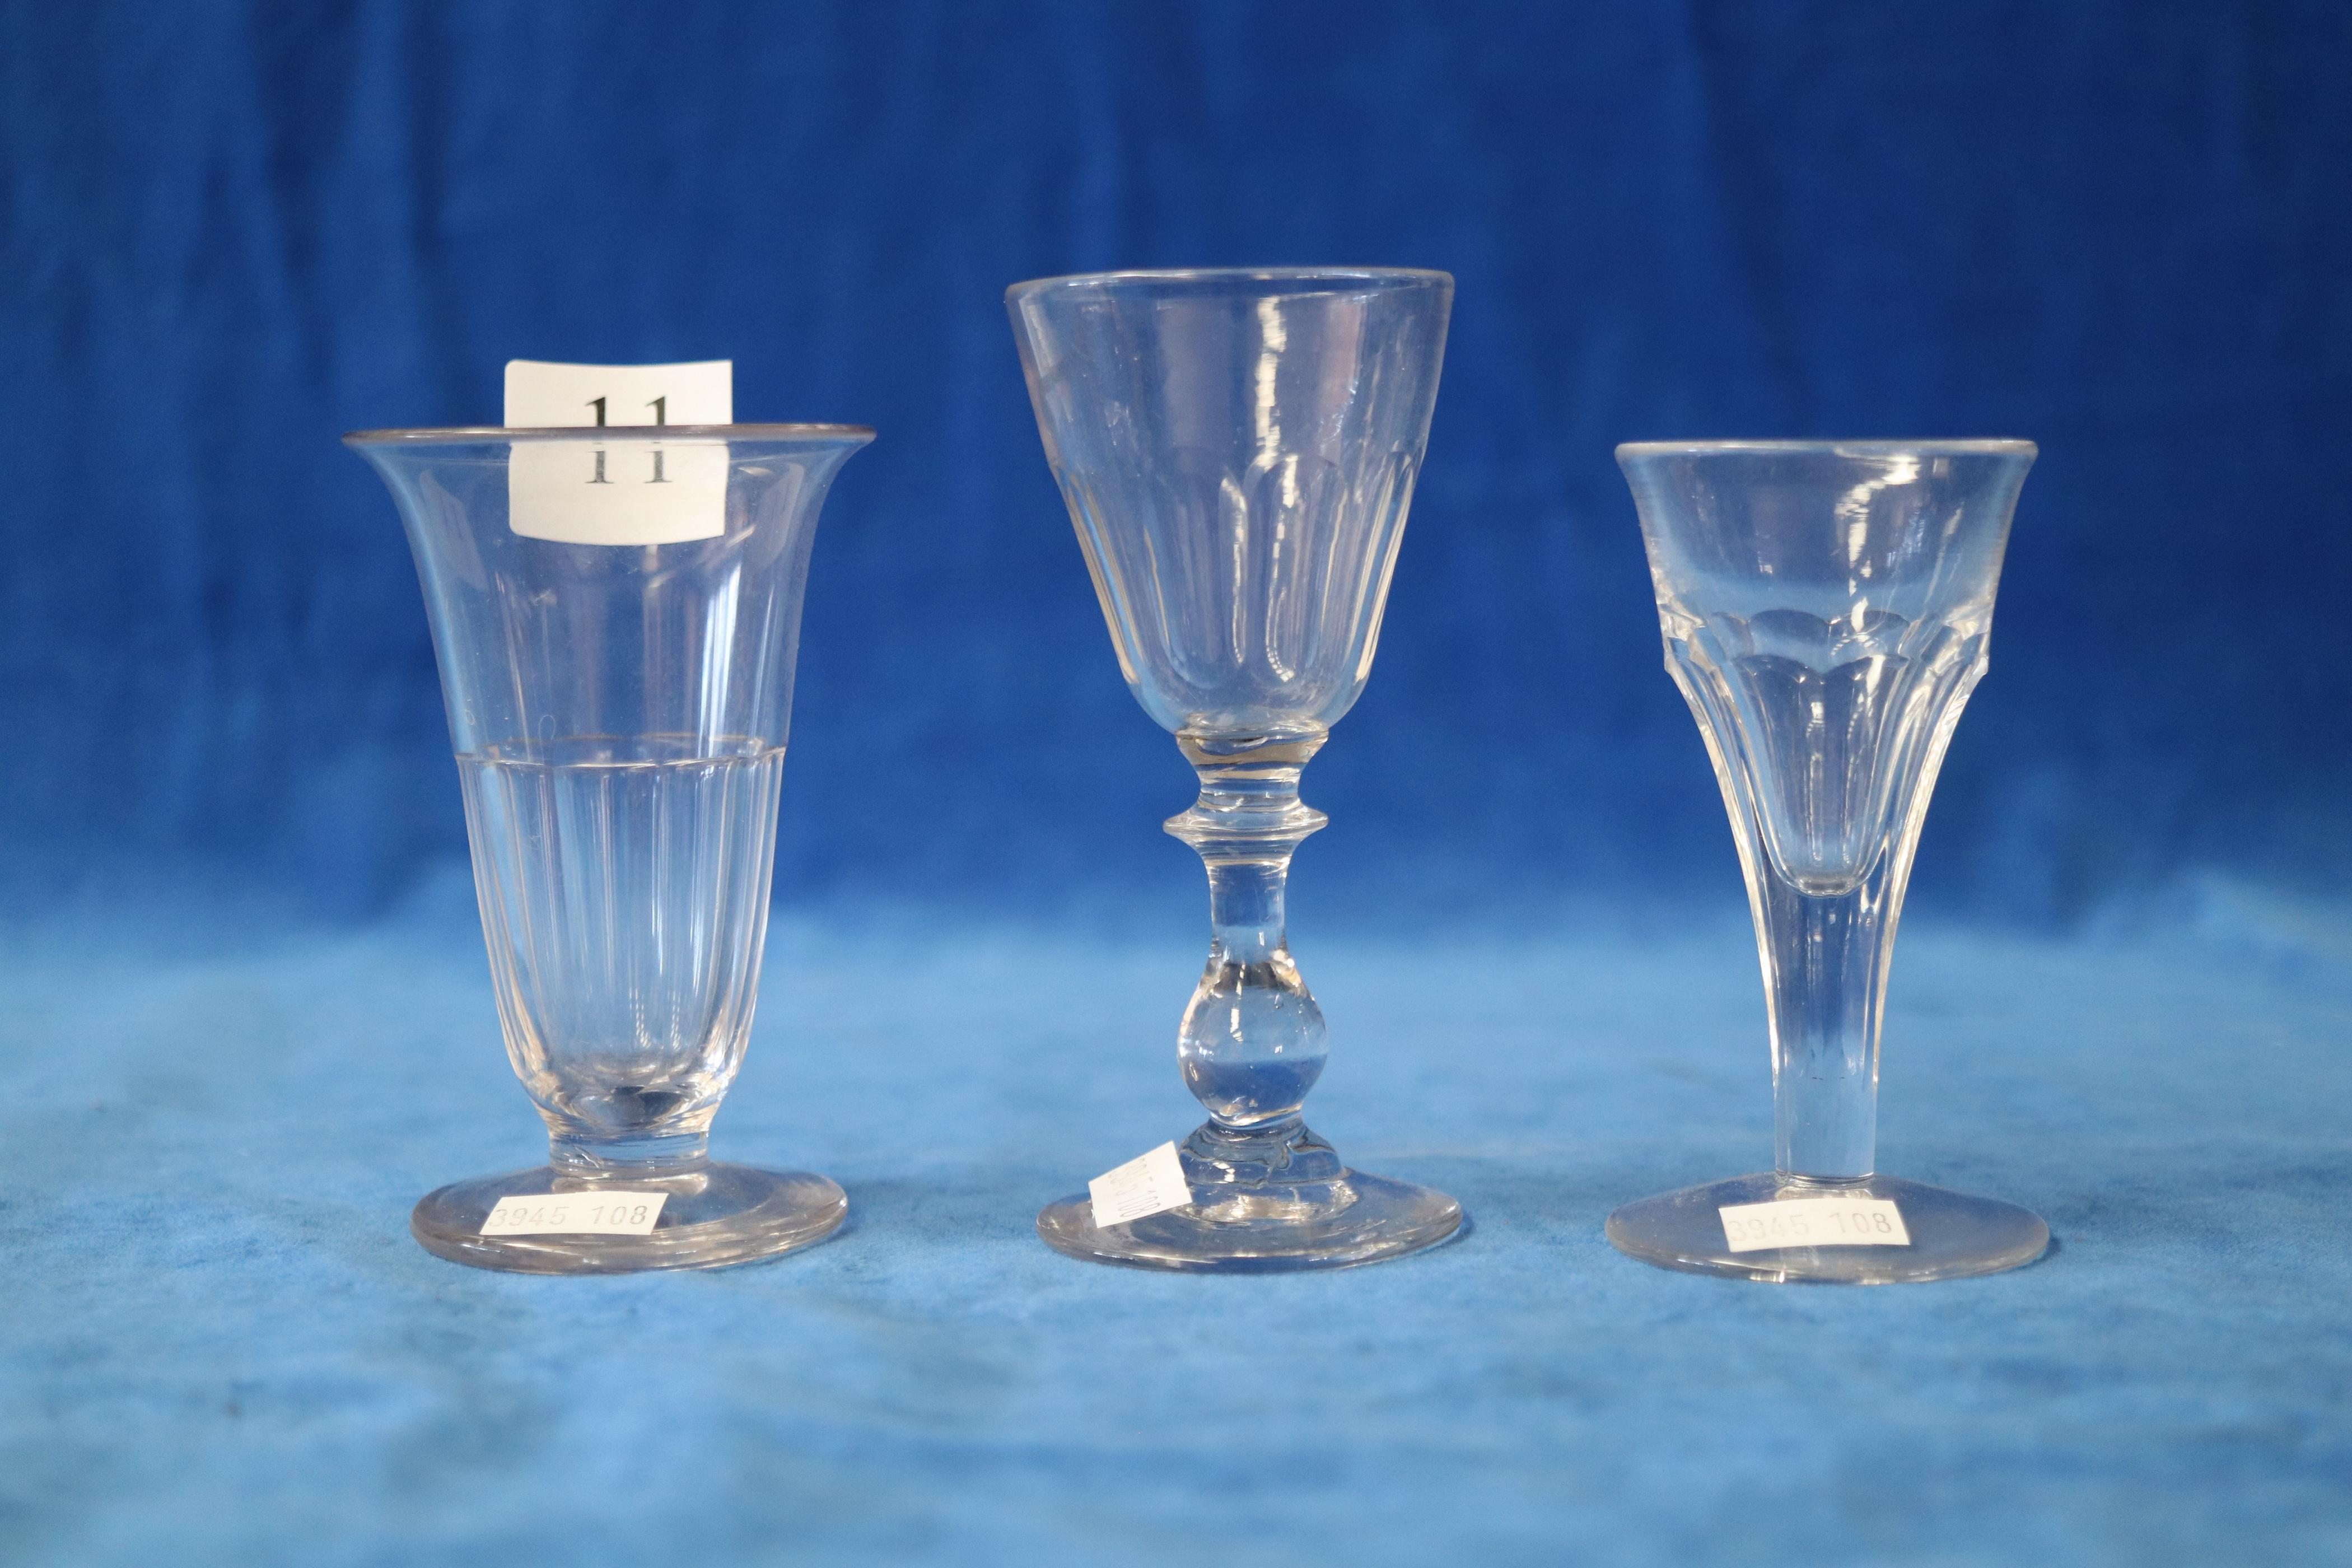 3 X VICTORIAN PENNY LICK GLASSES, ASSORTED SIZES AND PATTERNS